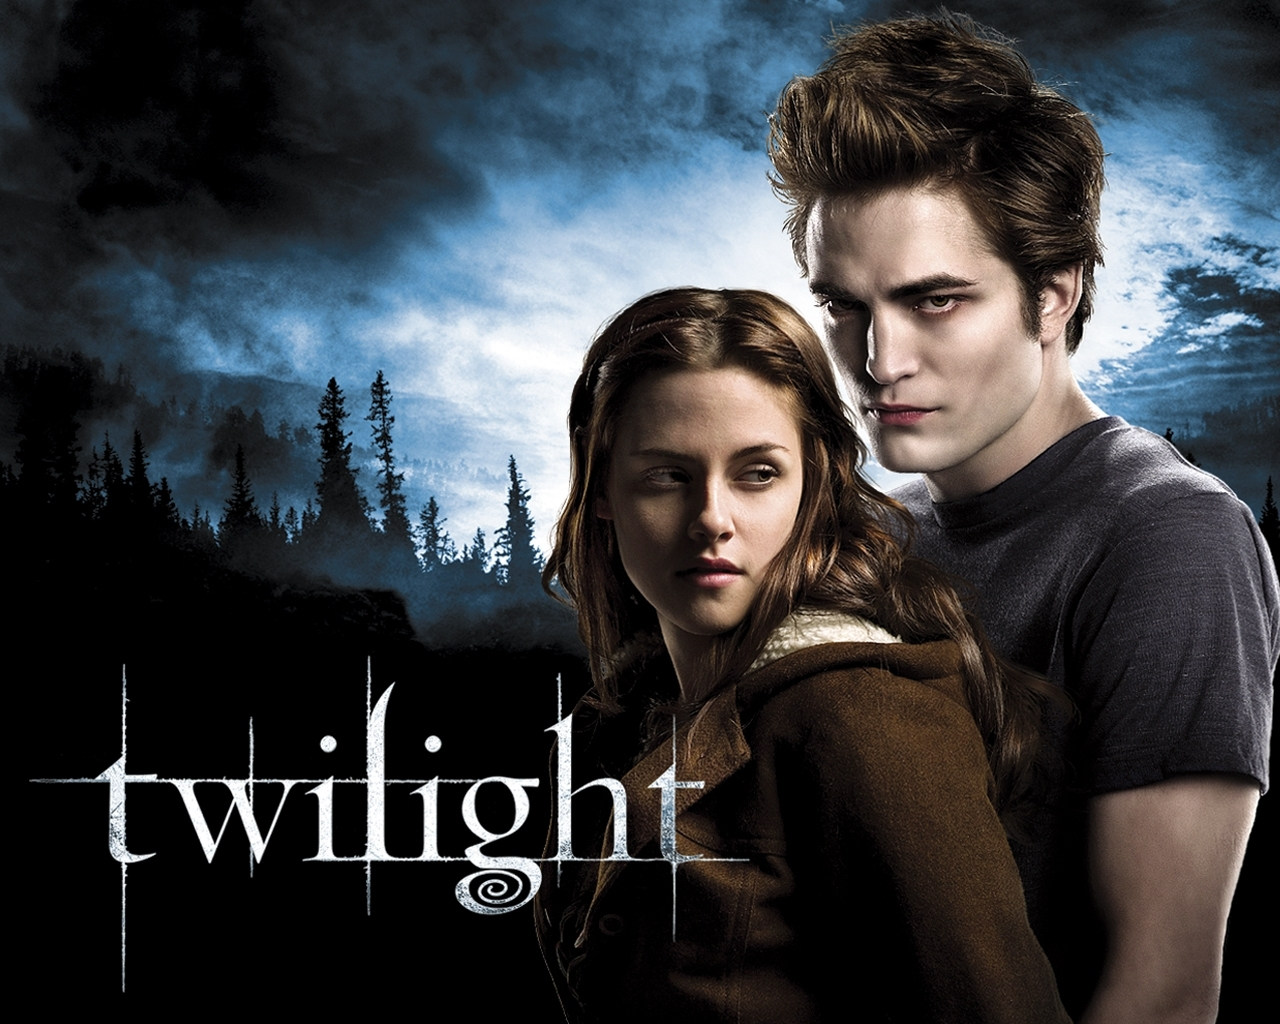 Edward and bella images twilight hd wallpaper and for Twilight edward photos